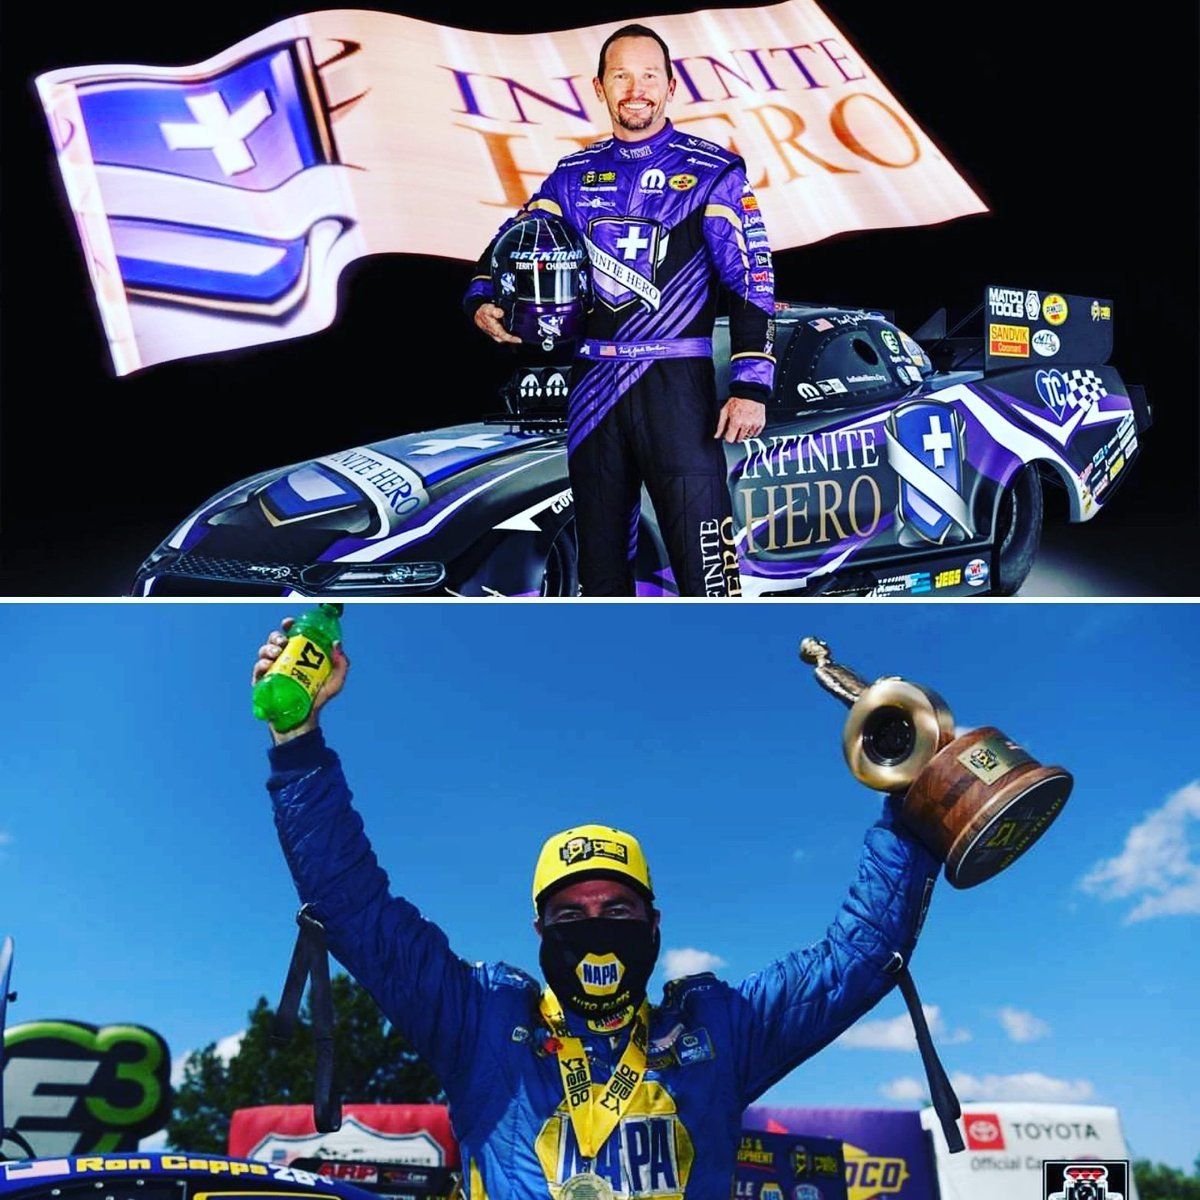 @NHRAs Ron Capps & Jack Beckman are among multiple #NHRA racers helping @scclasvegas raise funds in our online auction, NHRA4SCC.givesmart.com! BID to enjoy a 20-minute @Zoom call with them. @LVMotorSpeedway @nsrlasvegas #lasvegascharity #lasvegasmotorspeedway #scclv #NASCAR